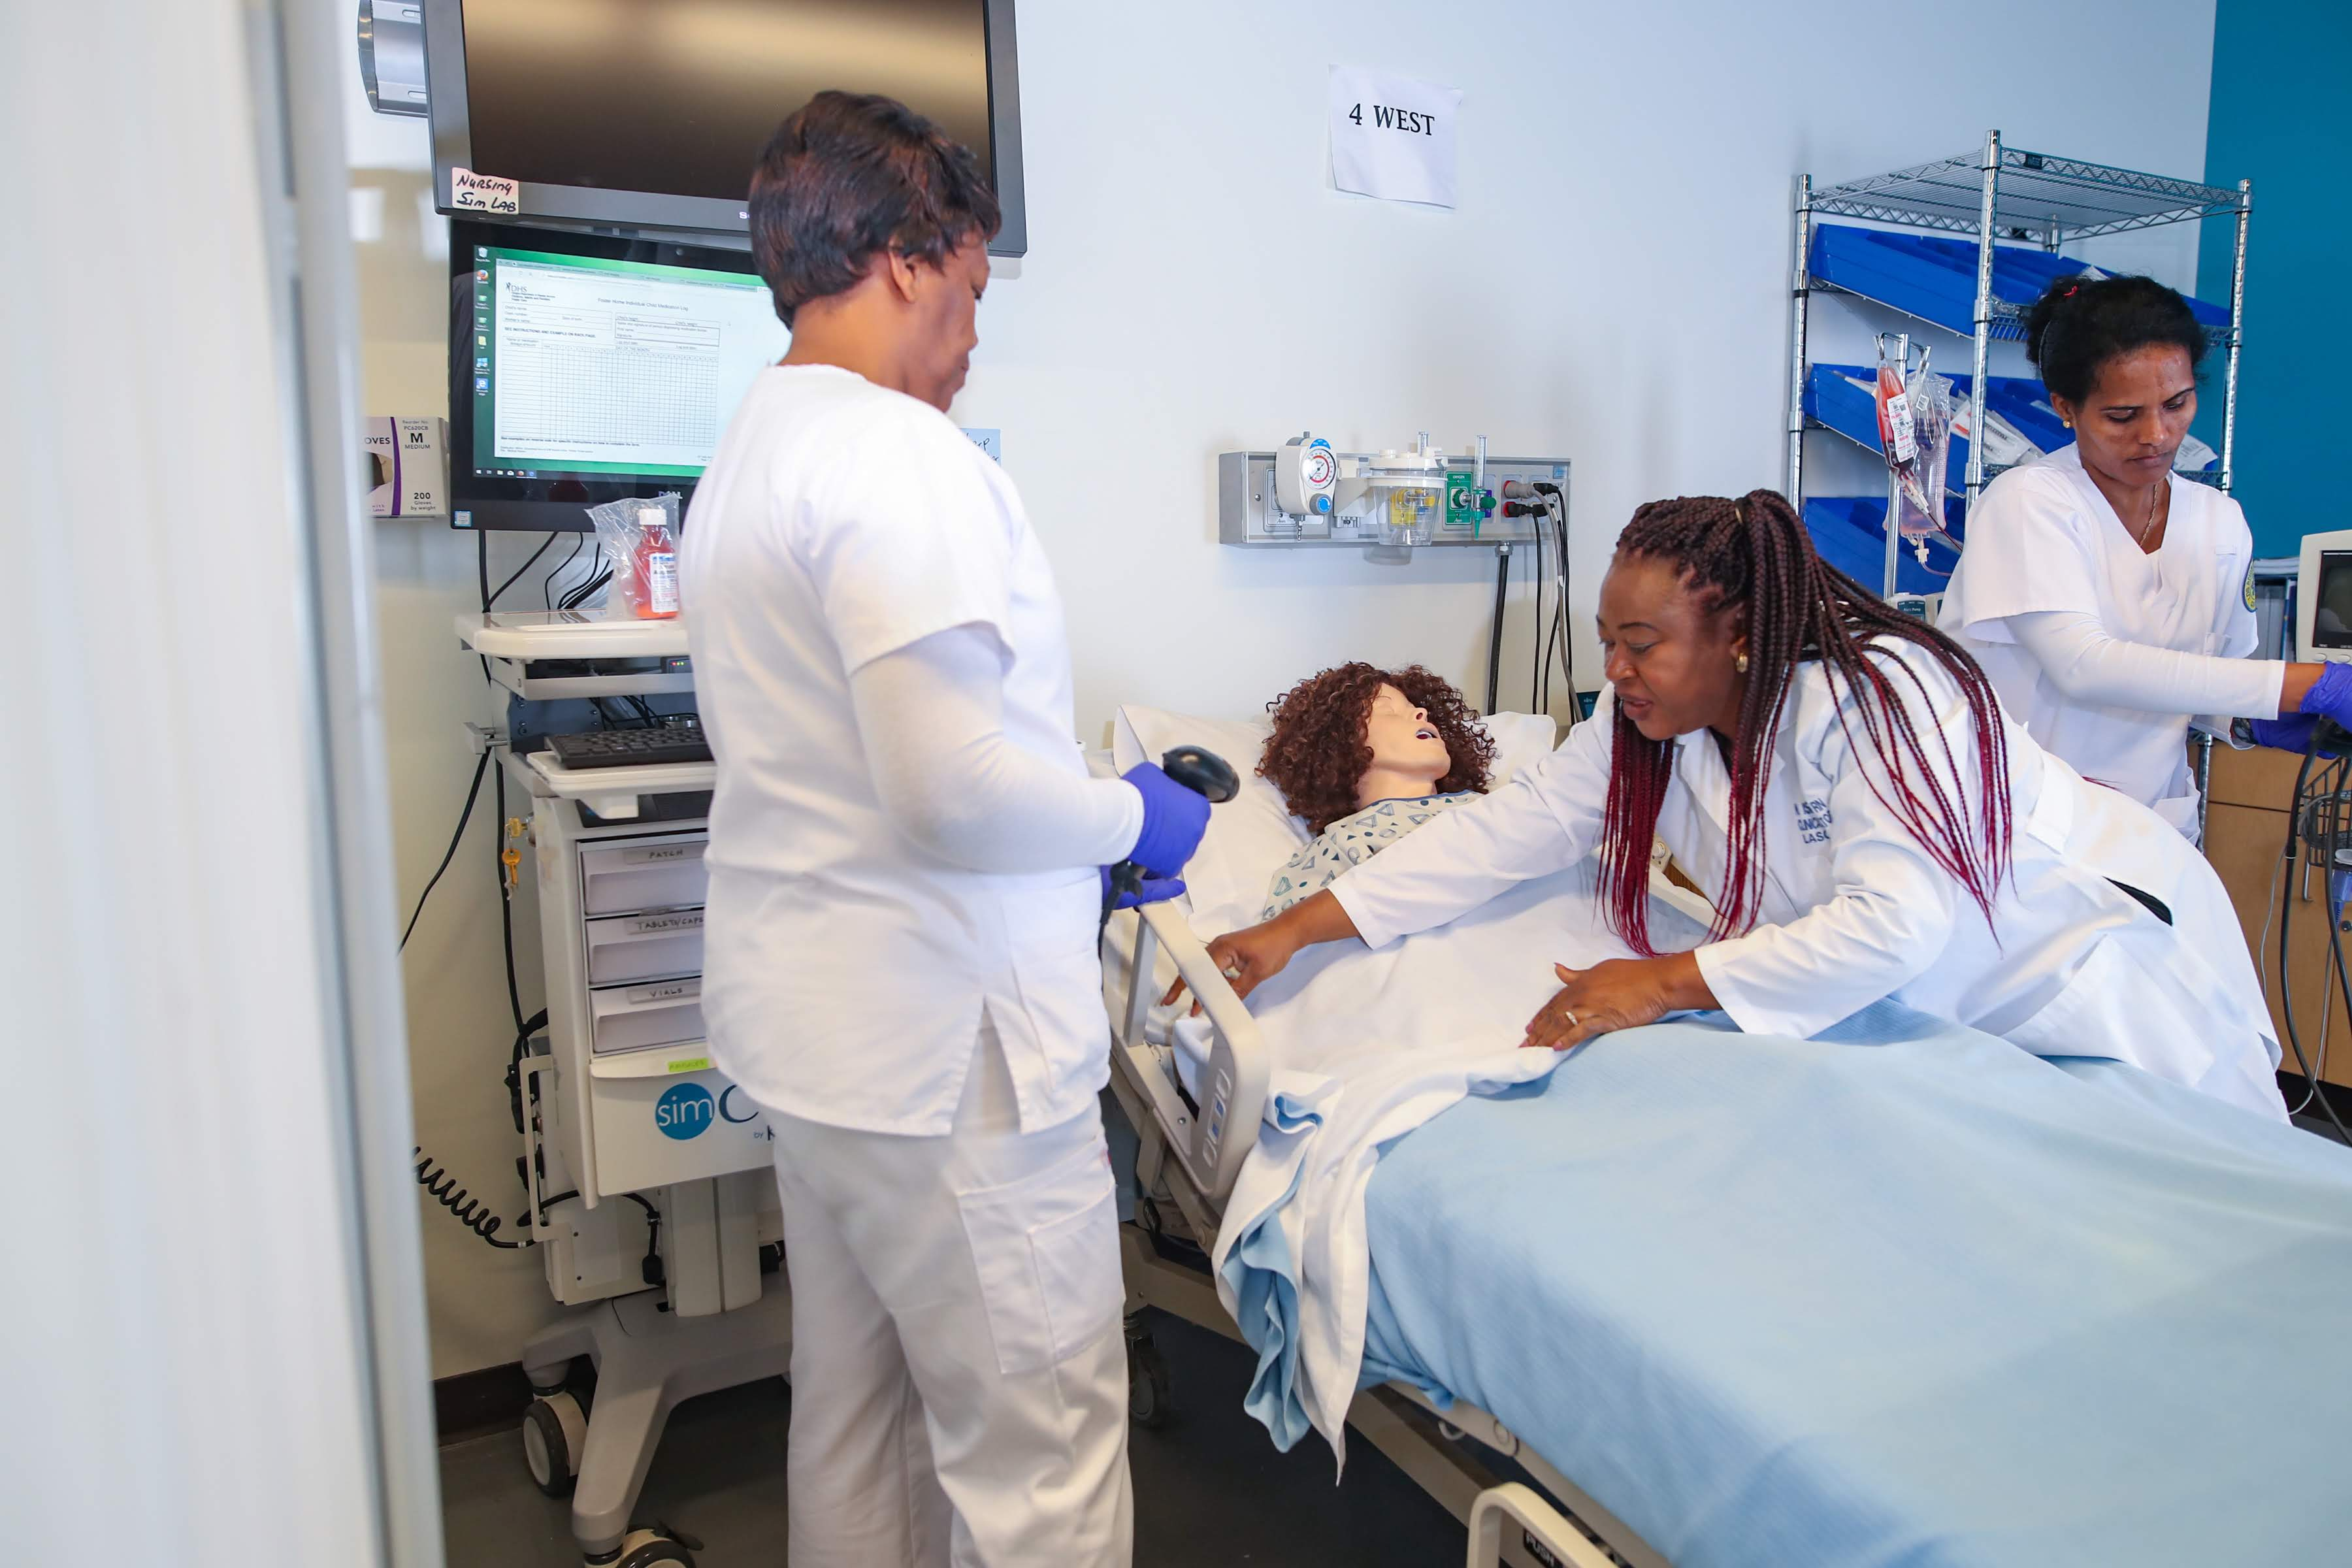 Nursing students practicing on patient